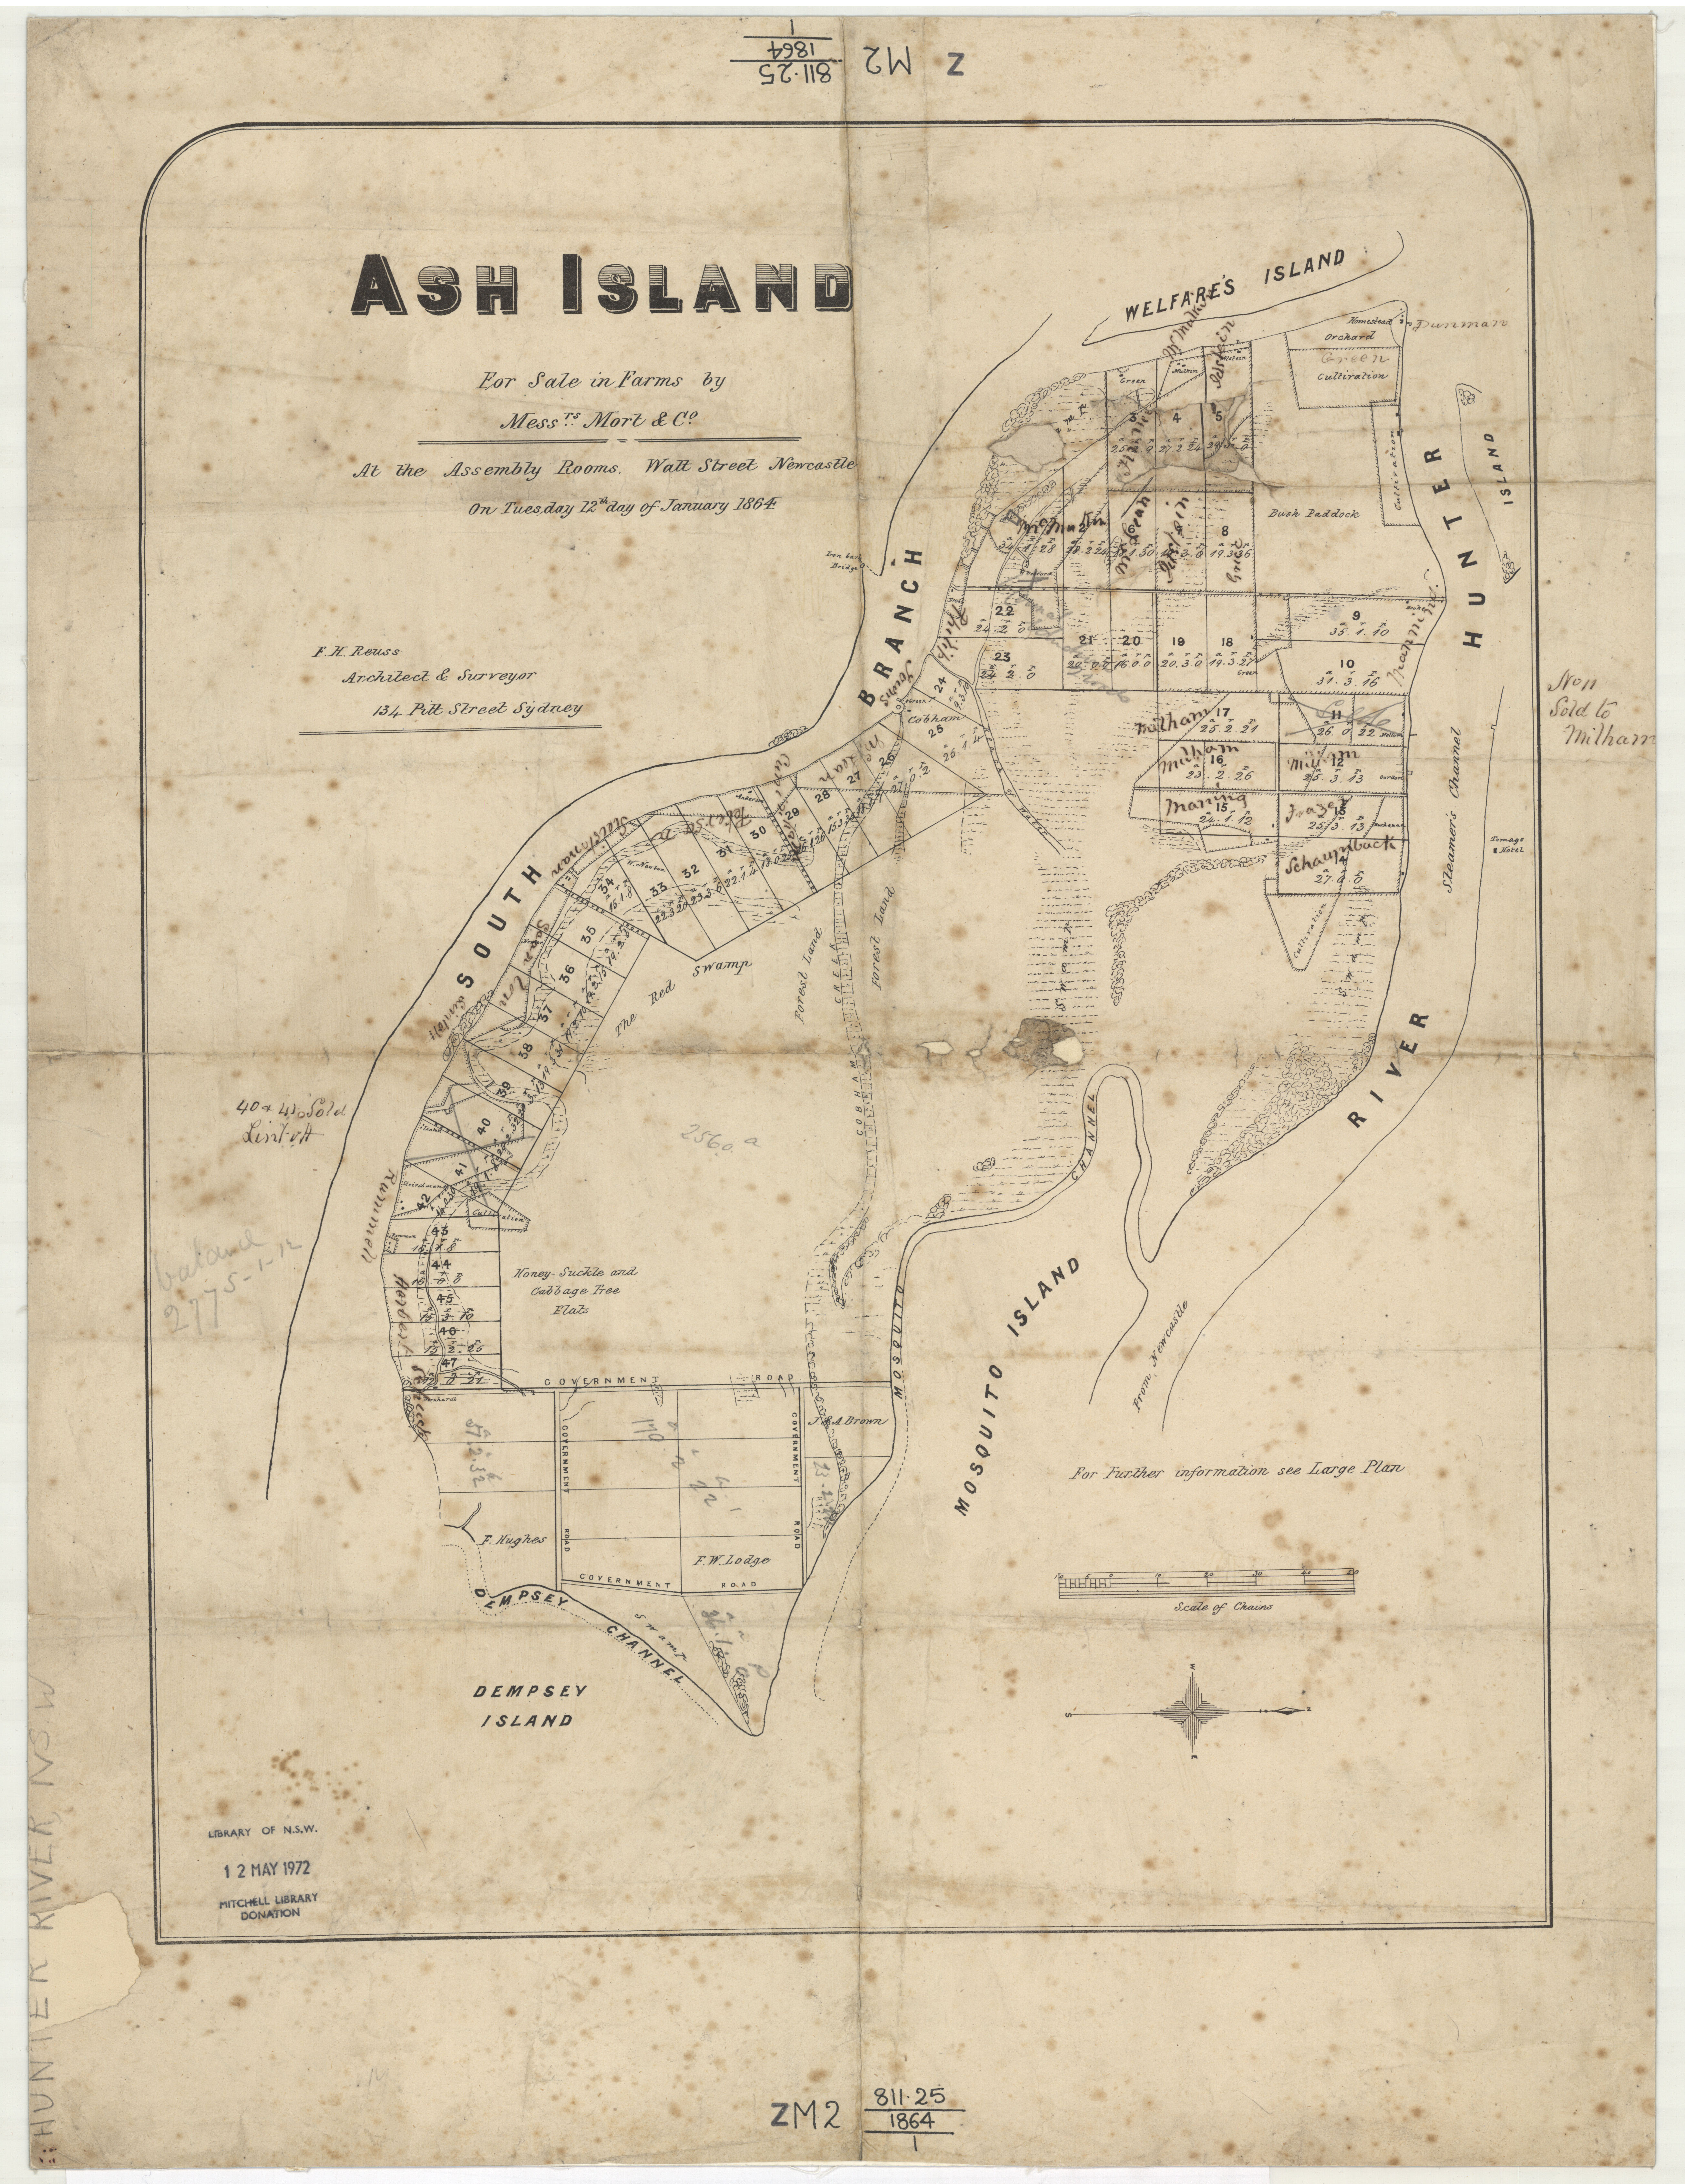 Ash Island 12th January 1864 (Courtesy of State Library of NSW) showing site of Scott's Homestead, orchard and cultivation.